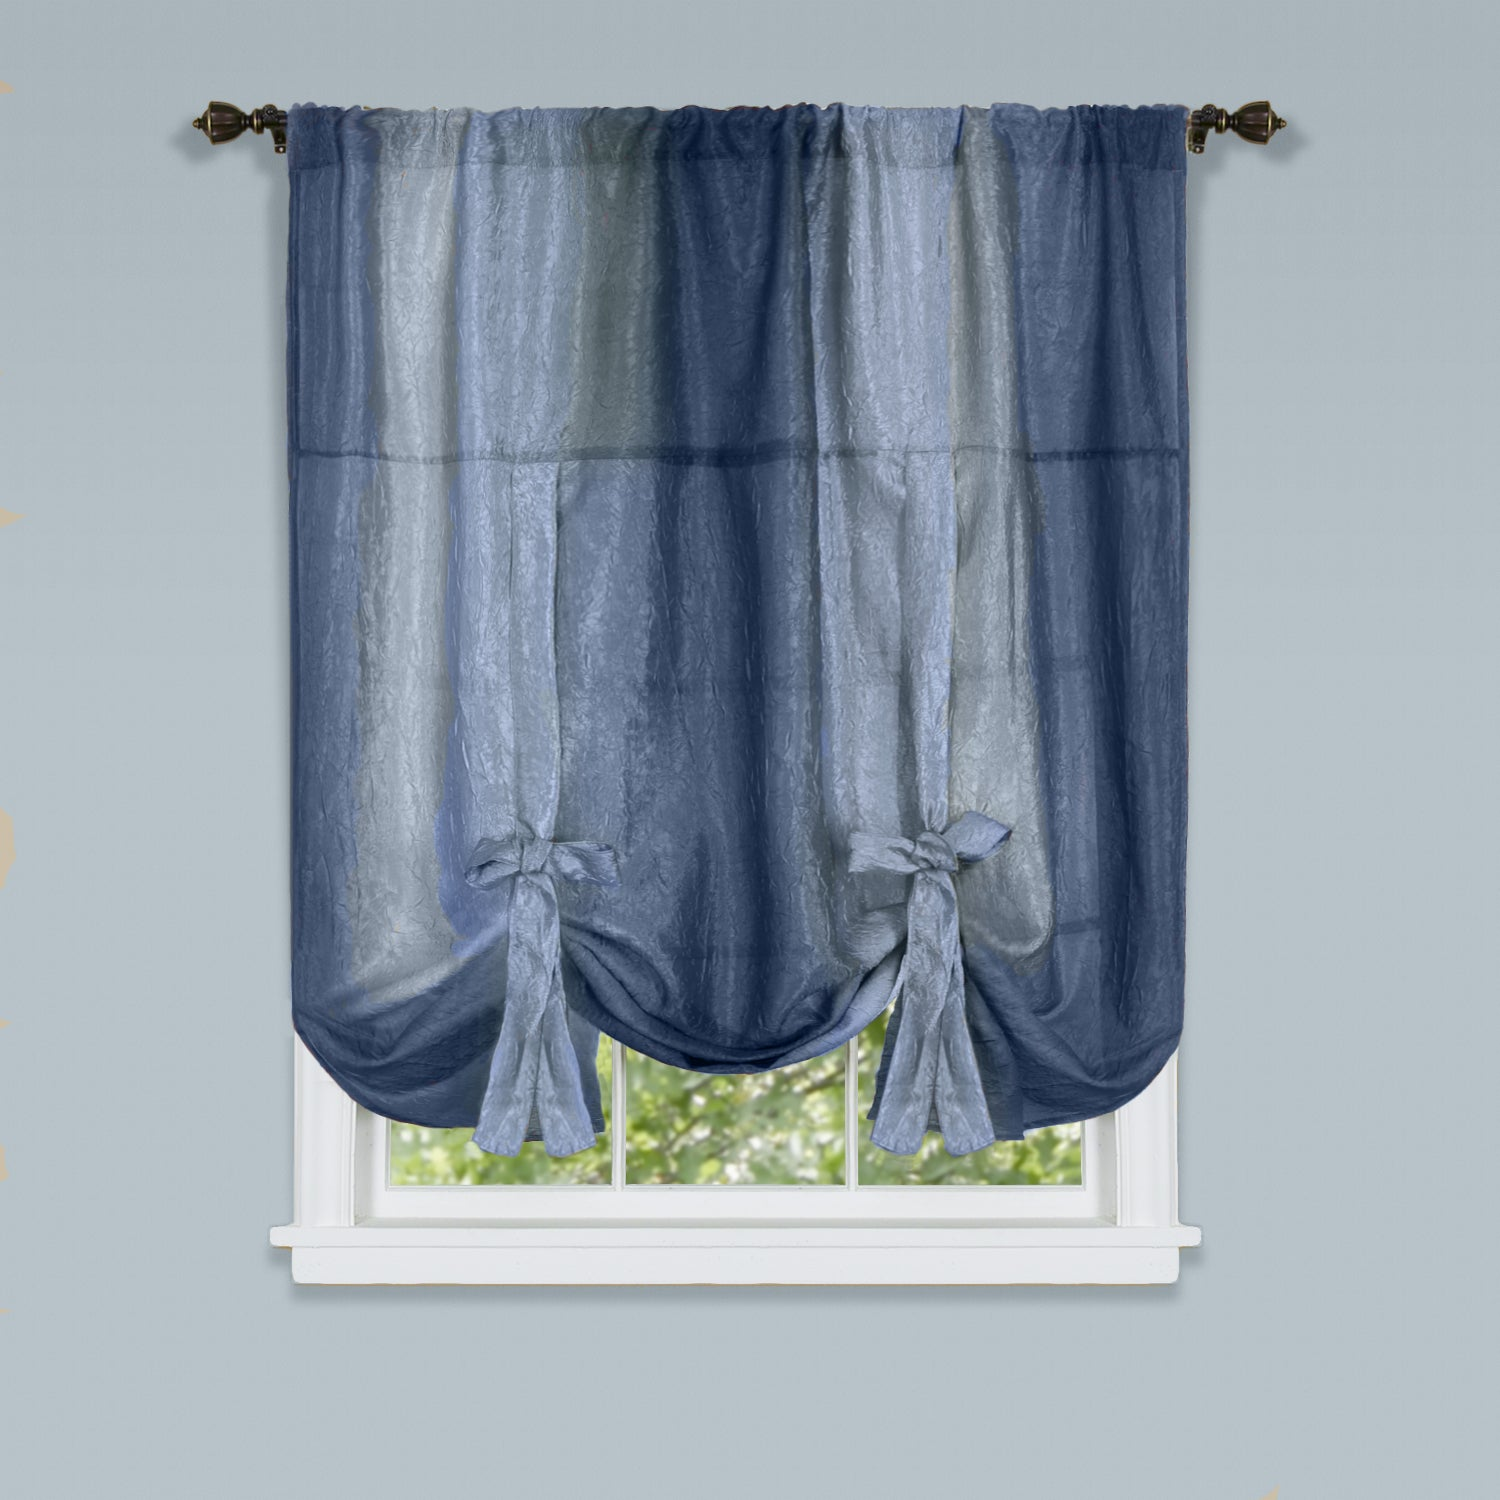 treatments yellow up kitchen window swag blinds valance and long small country blue coverings valances tie white green door shades extra curtains sheer